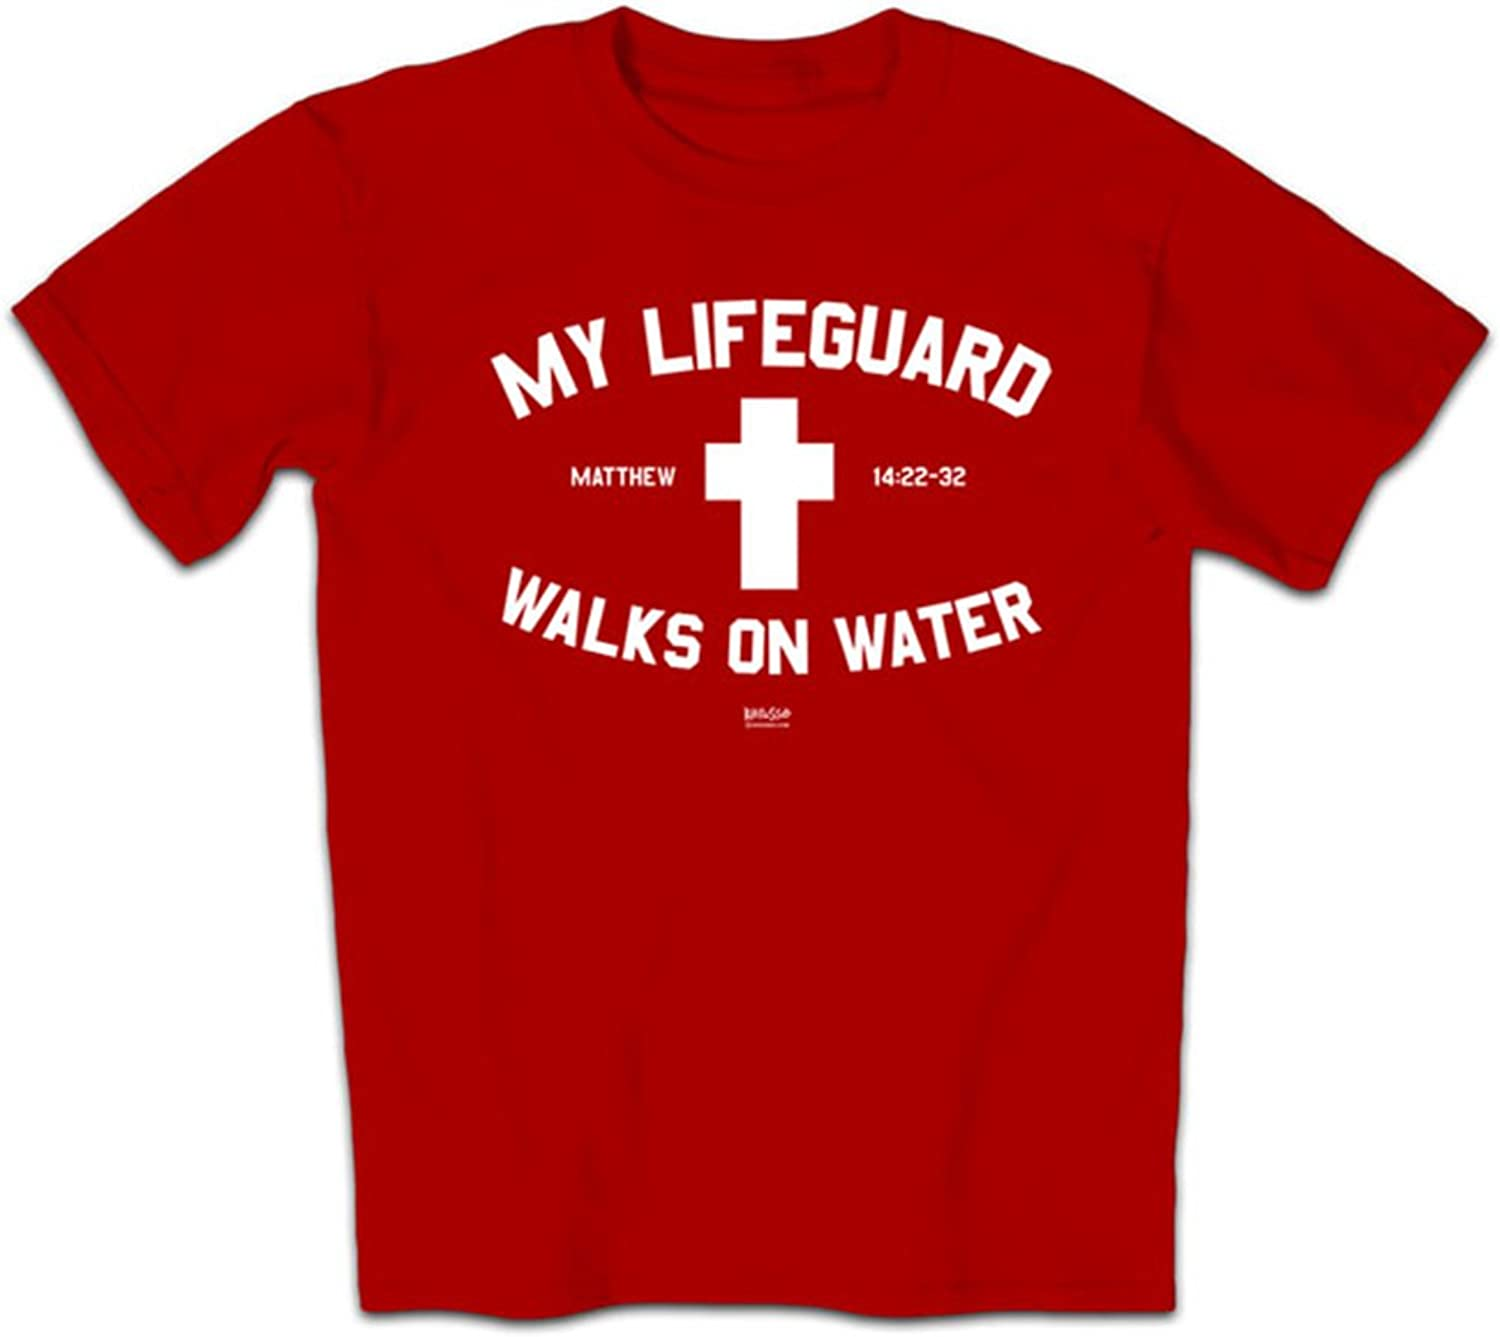 Amazon.com: Christian T-Shirt Lifeguard Design: Clothing